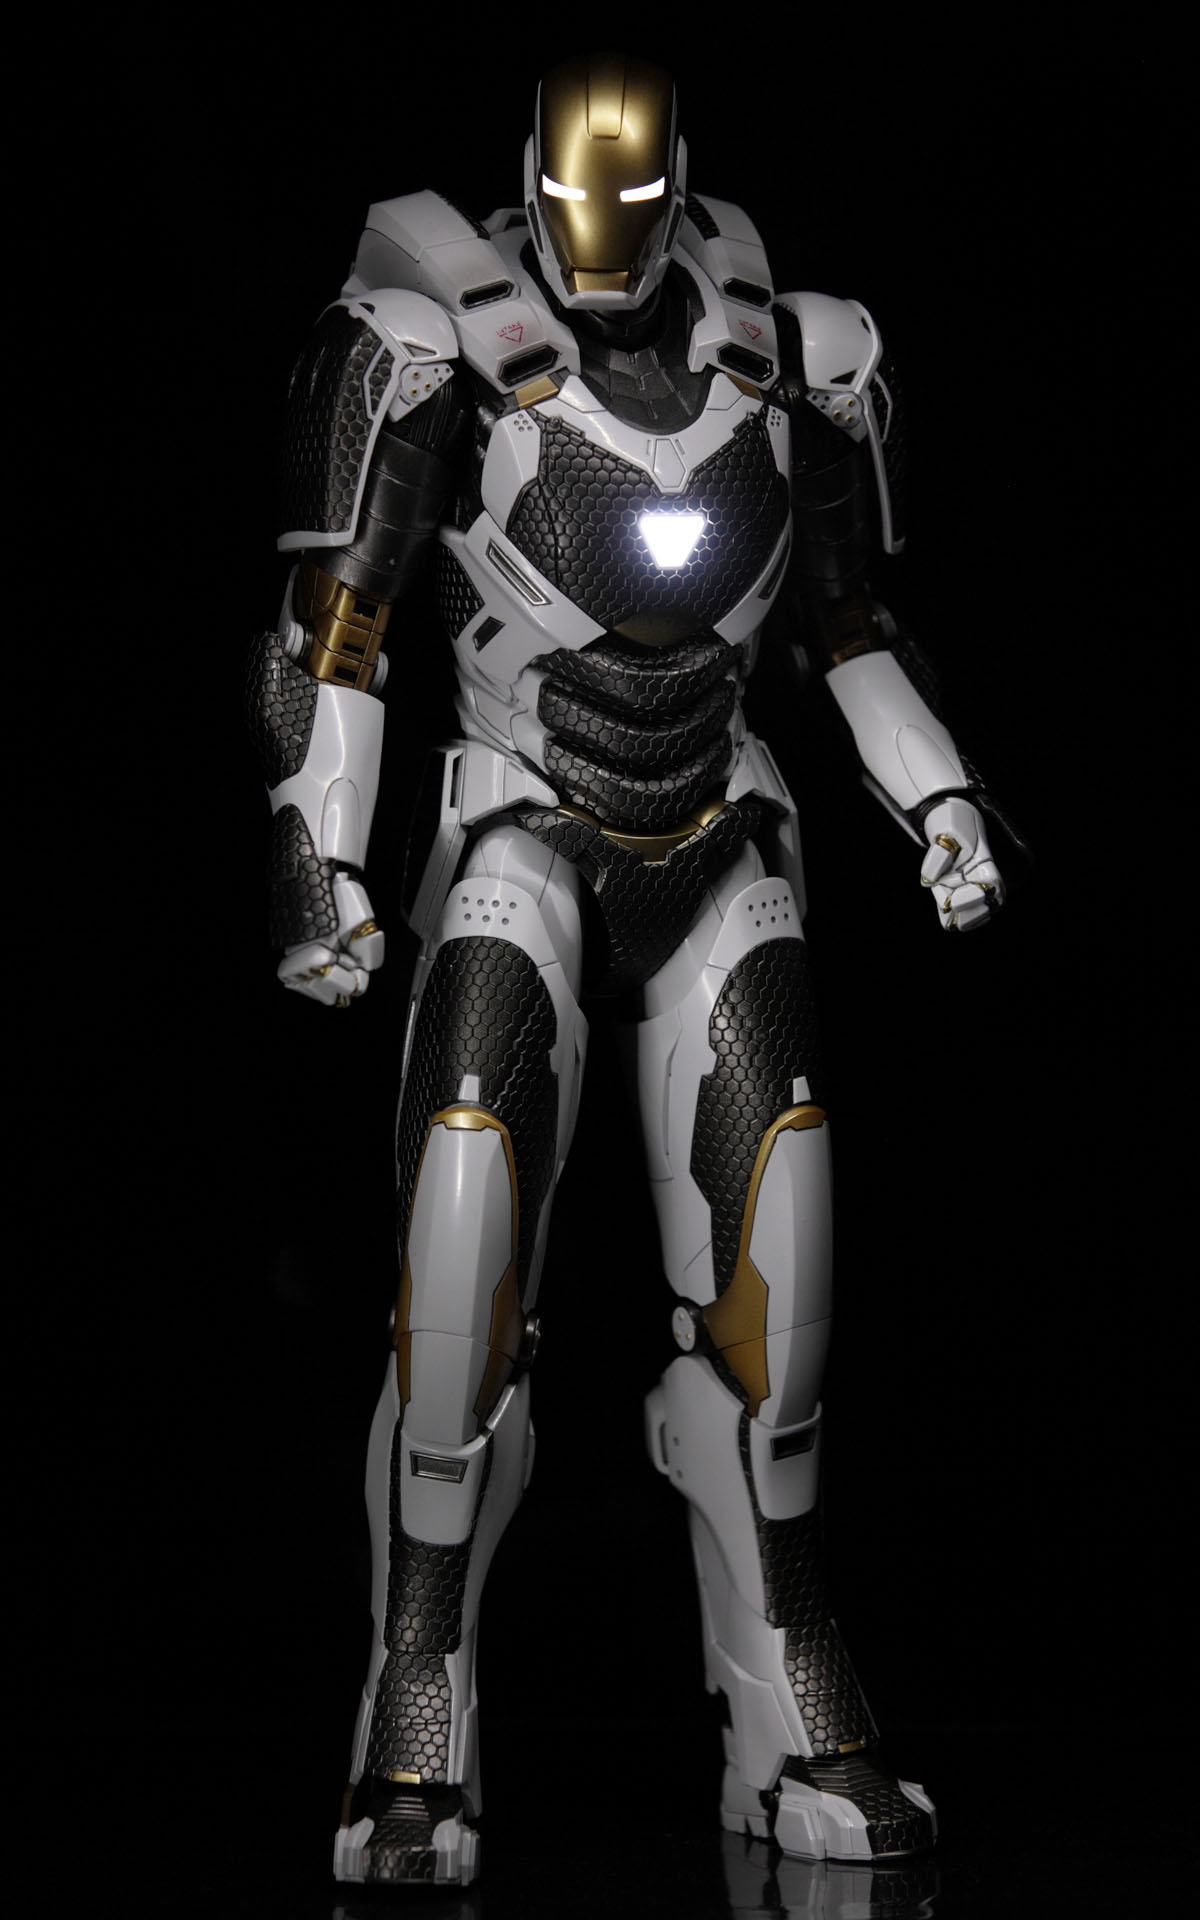 hottoys-iron-man3-mark-39-starboost-picture01